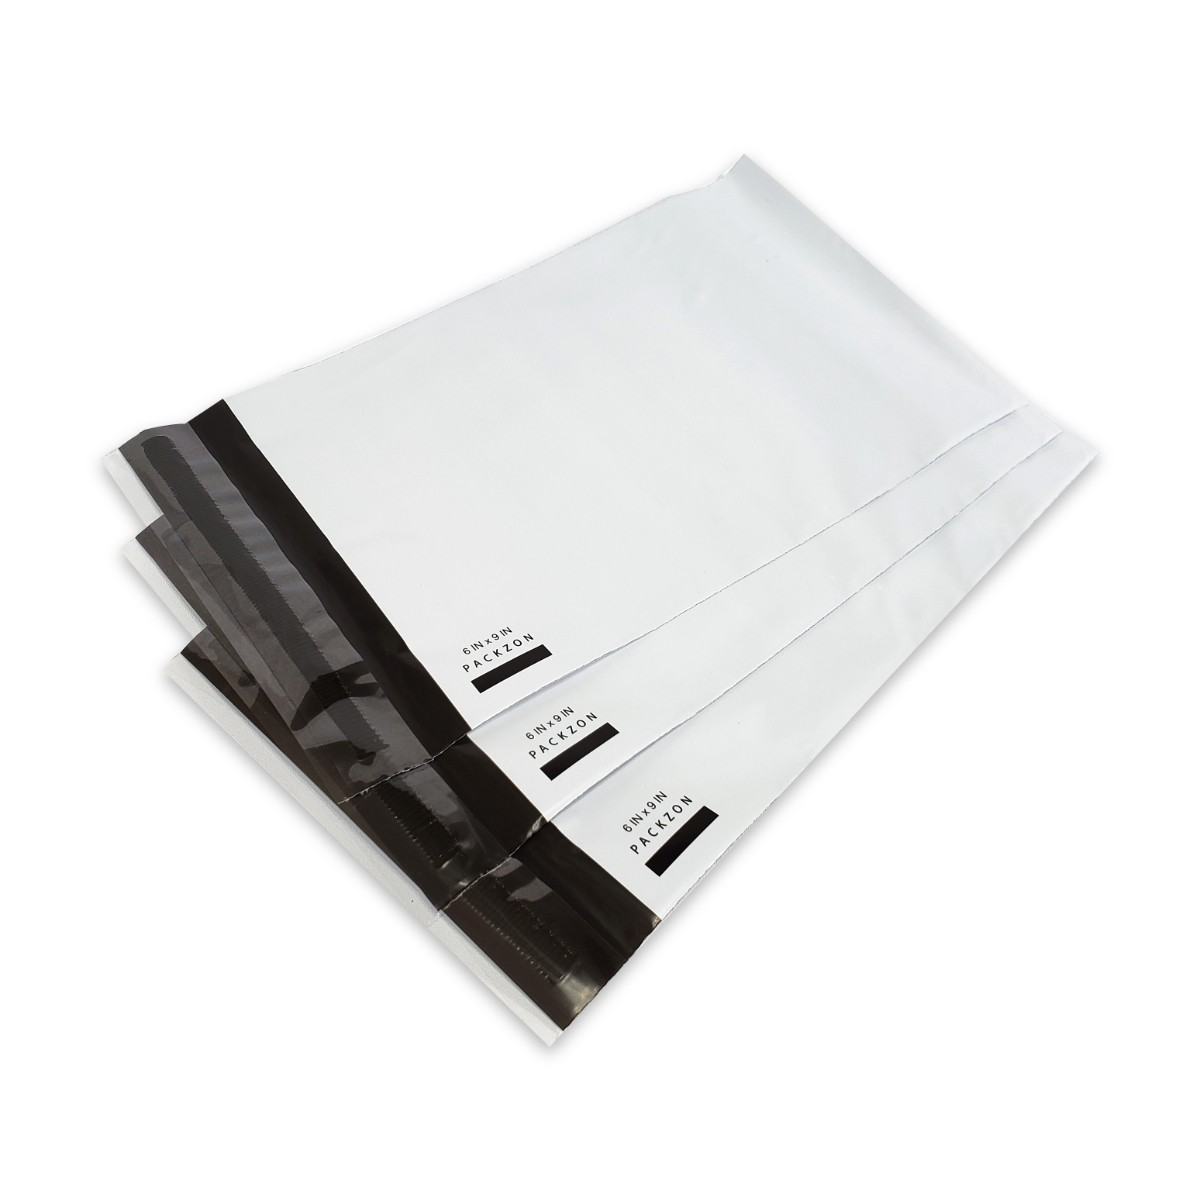 6x9 200 Privacy Shield 2.5 Mil Bags Poly Mailers Envelopes Self Seal 100 /% Best